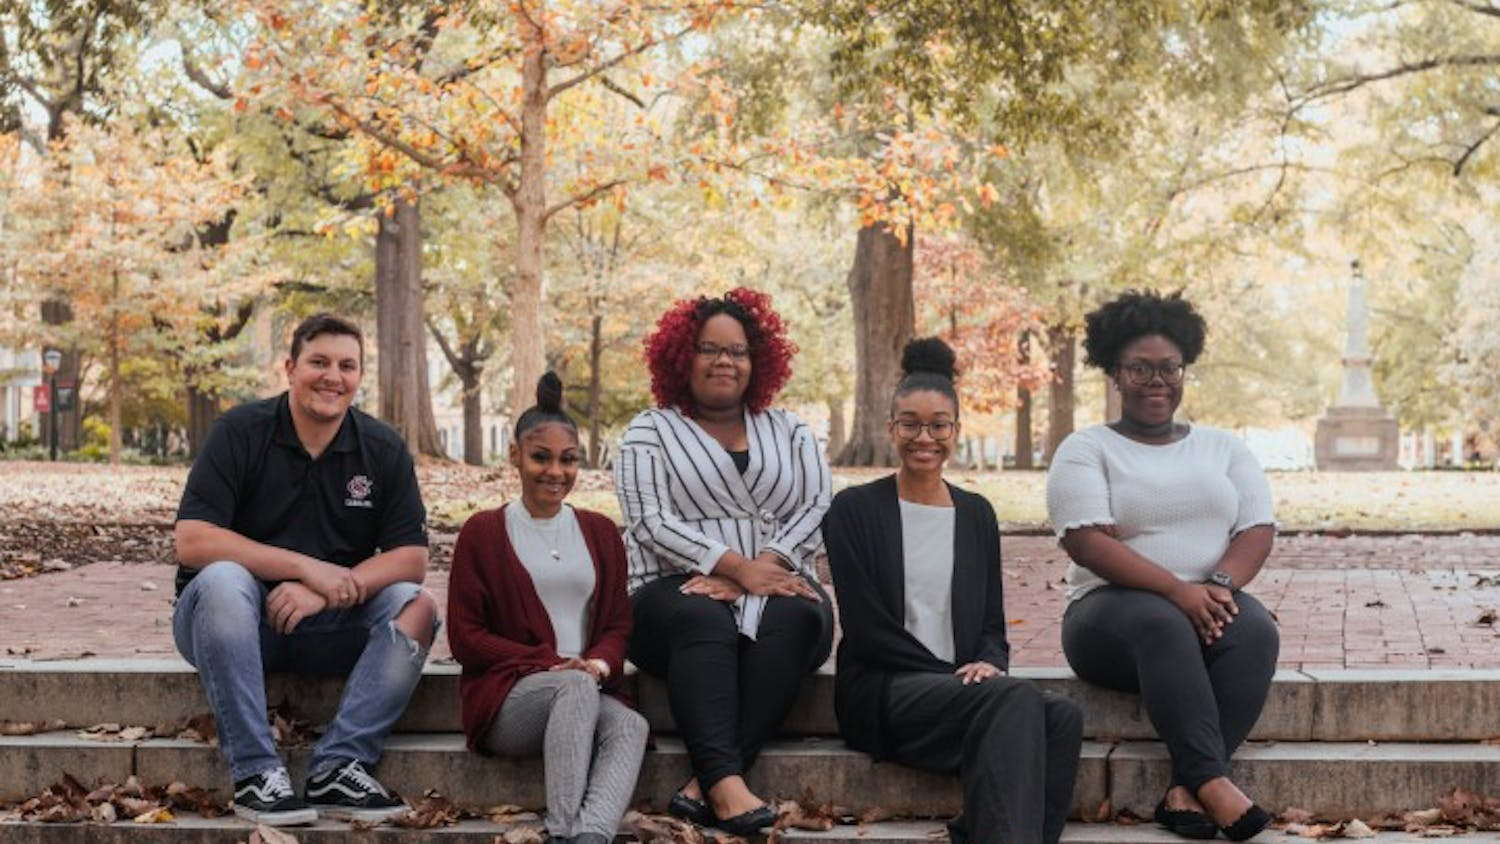 From left to right: Bradley Barker, A'ya Hall, Alyssia Ross, Yaunna Hunter and Kailah Green pose for a photo at the Horseshoe. The group makes up a portion of the Association of Transfer Students, an organization that provides support and community for transfer students of all ages.